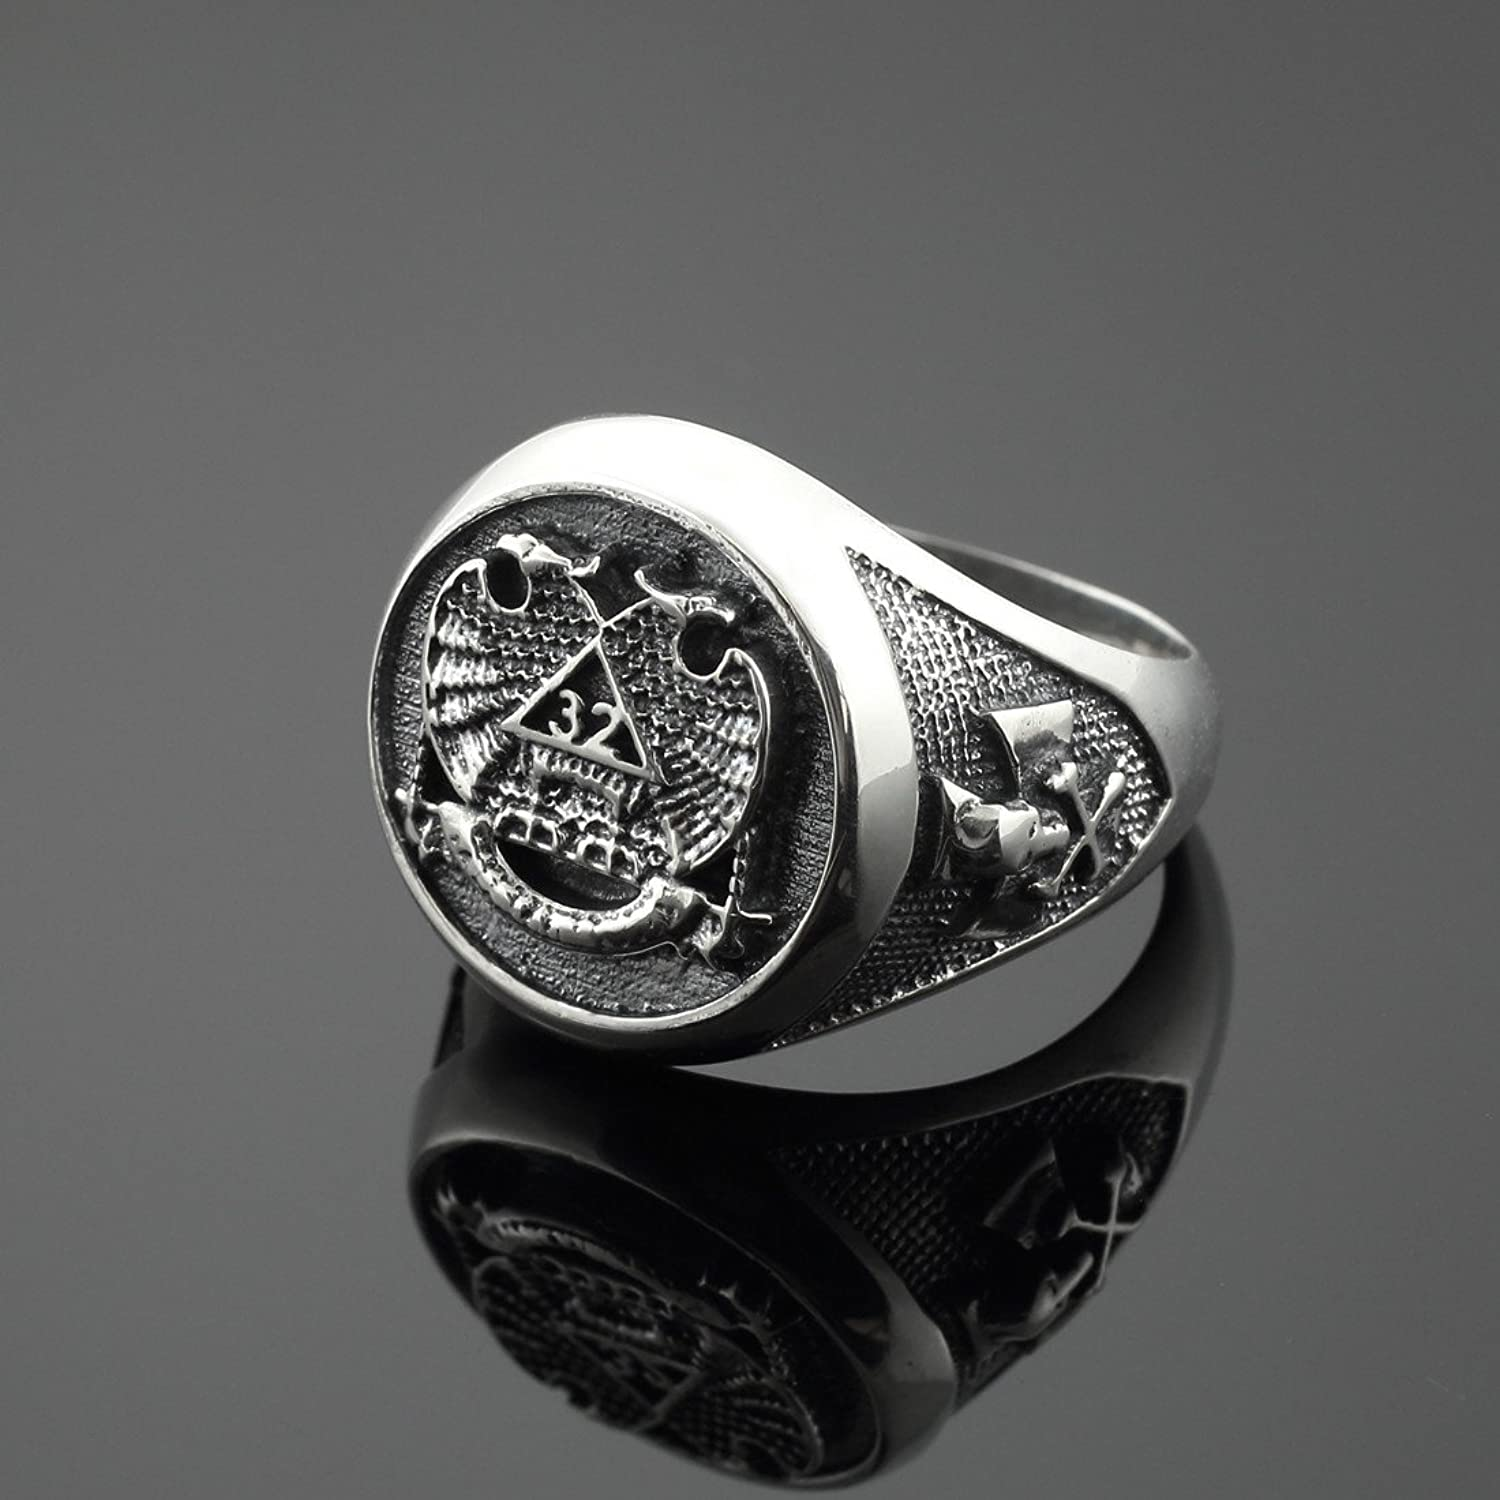 order special az oxidized zobel atelier szor collections diamond sprinkle ring sprinkles products rings gold silver curve